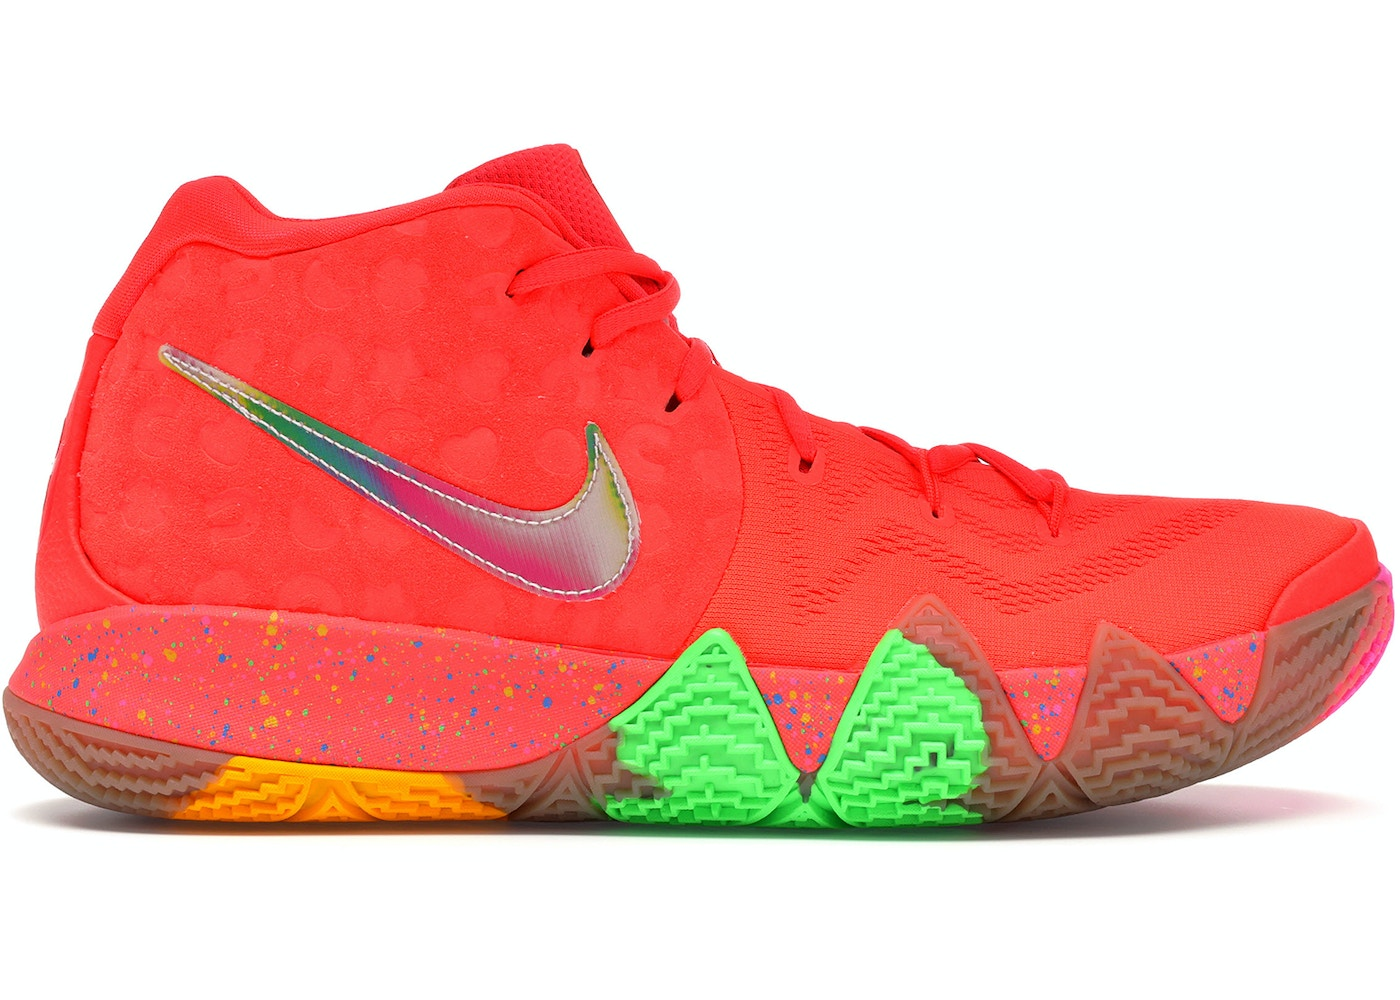 the best attitude 5810e 1d326 Kyrie 4 Lucky Charms (Special Cereal Box Package)